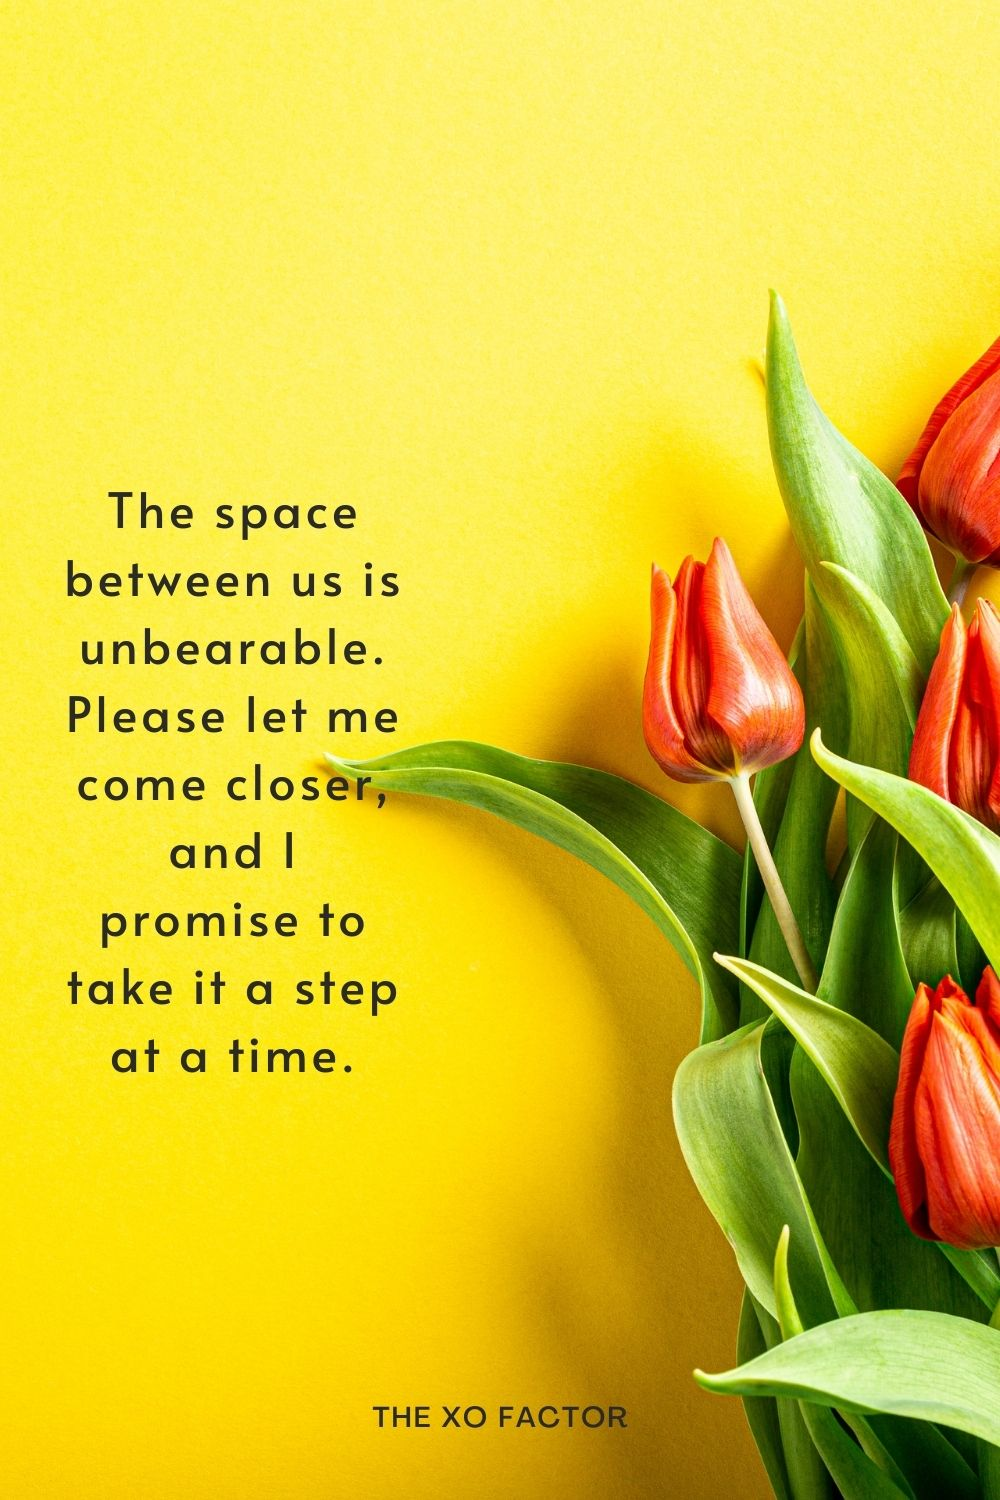 The space between us is unbearable. Please let me come closer, and I promise to take it a step at a time